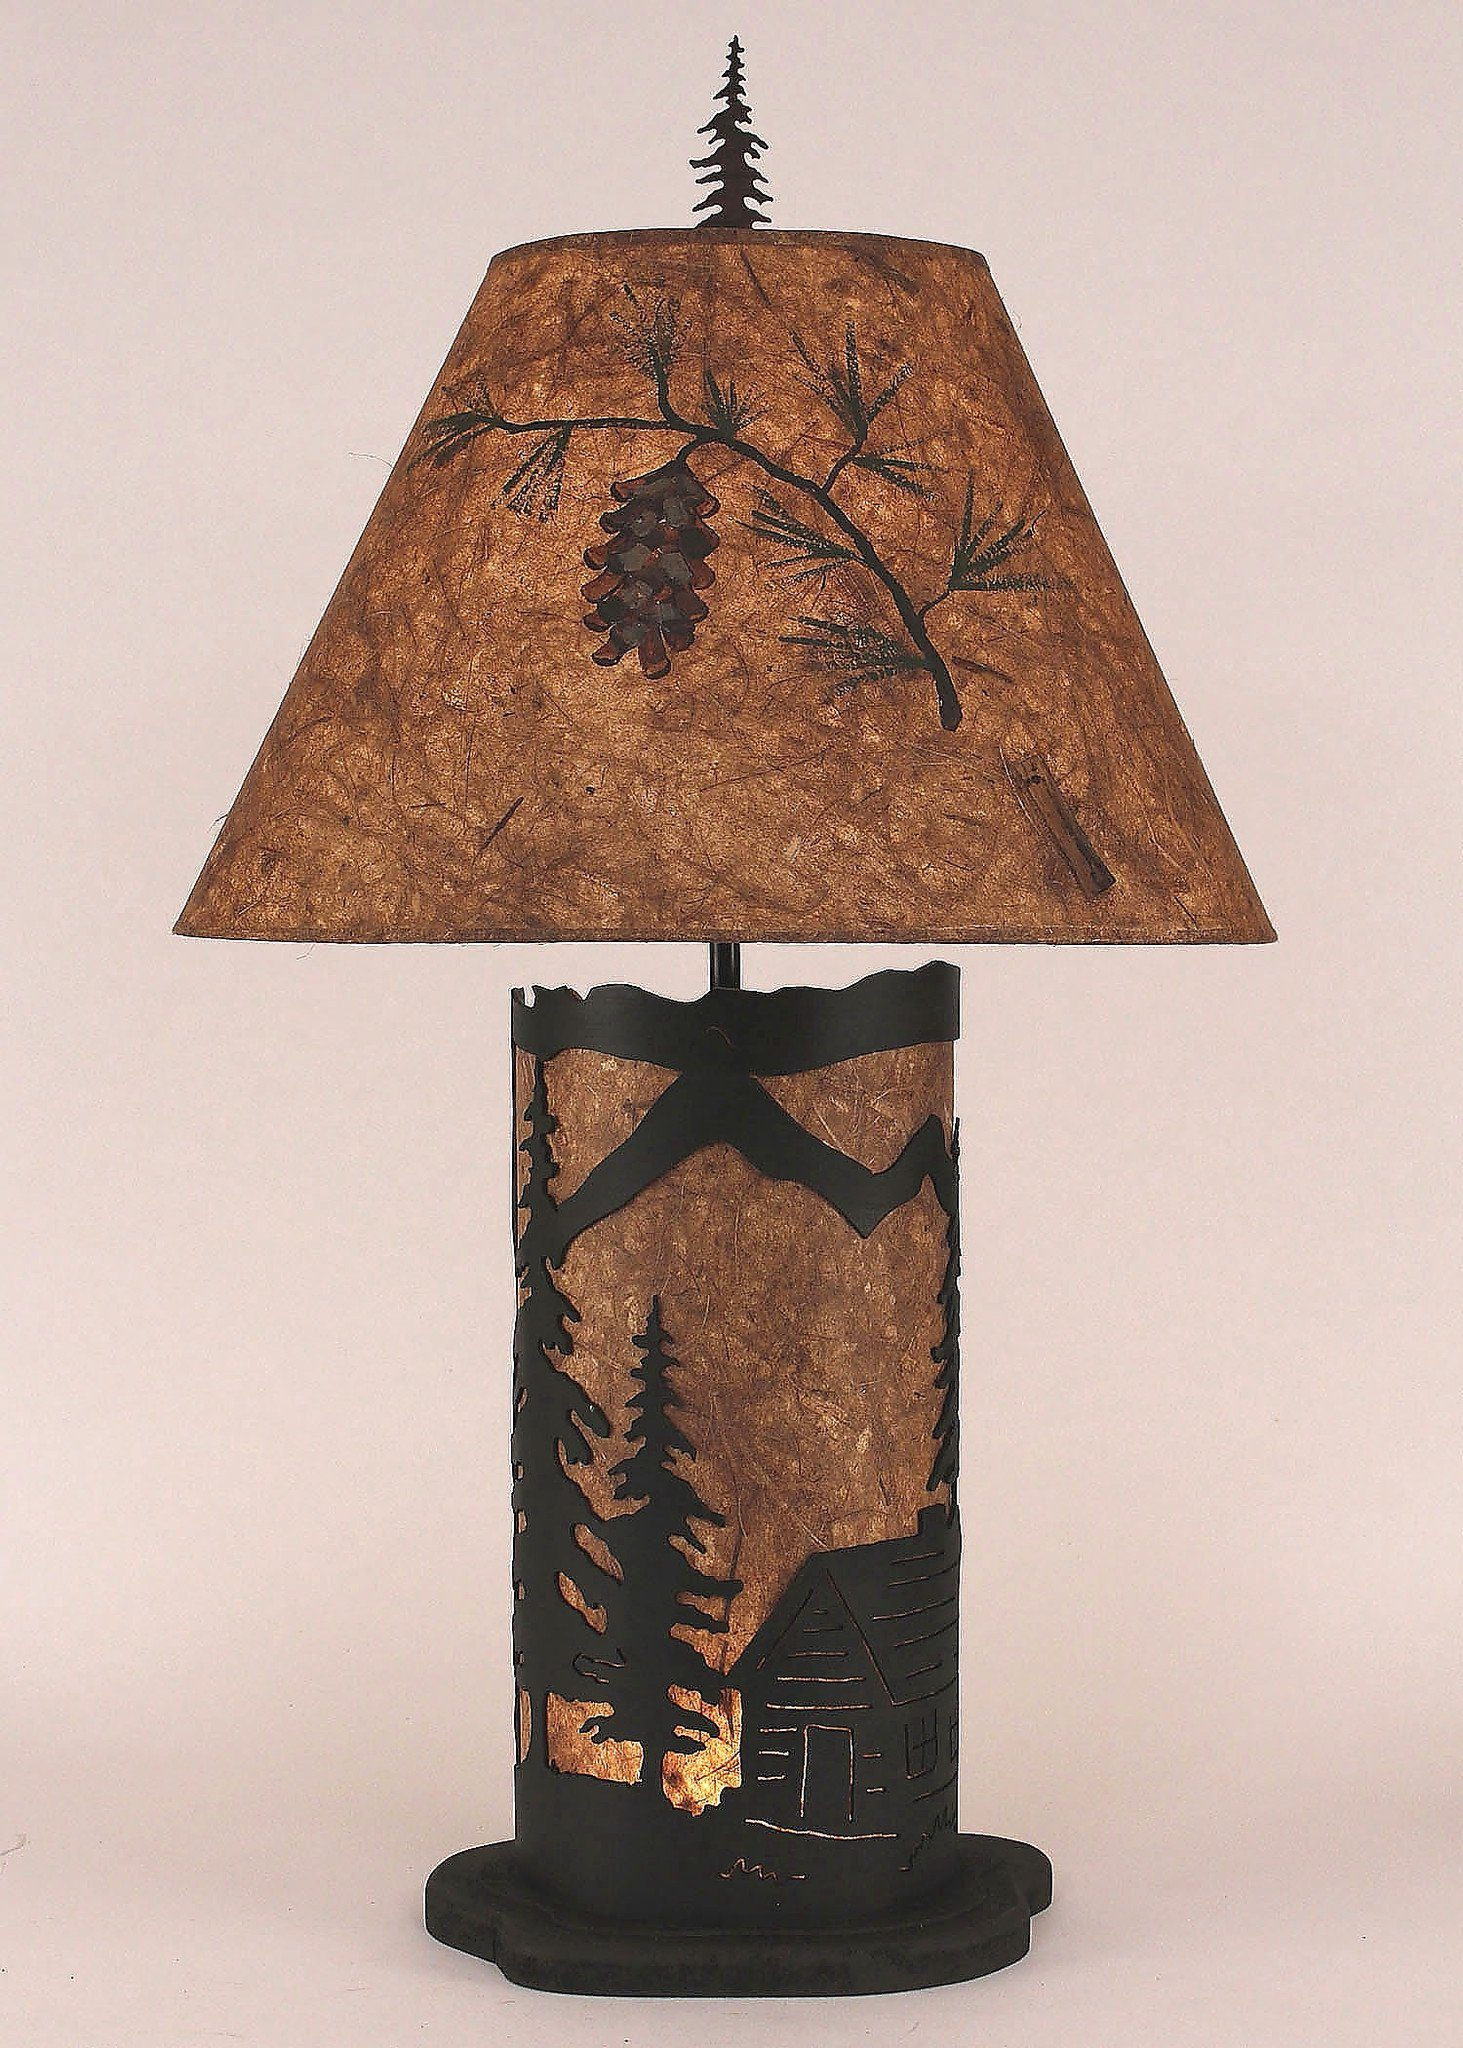 lamps lamp twig fabric cabin rustic shades log branch sizes pattern tree